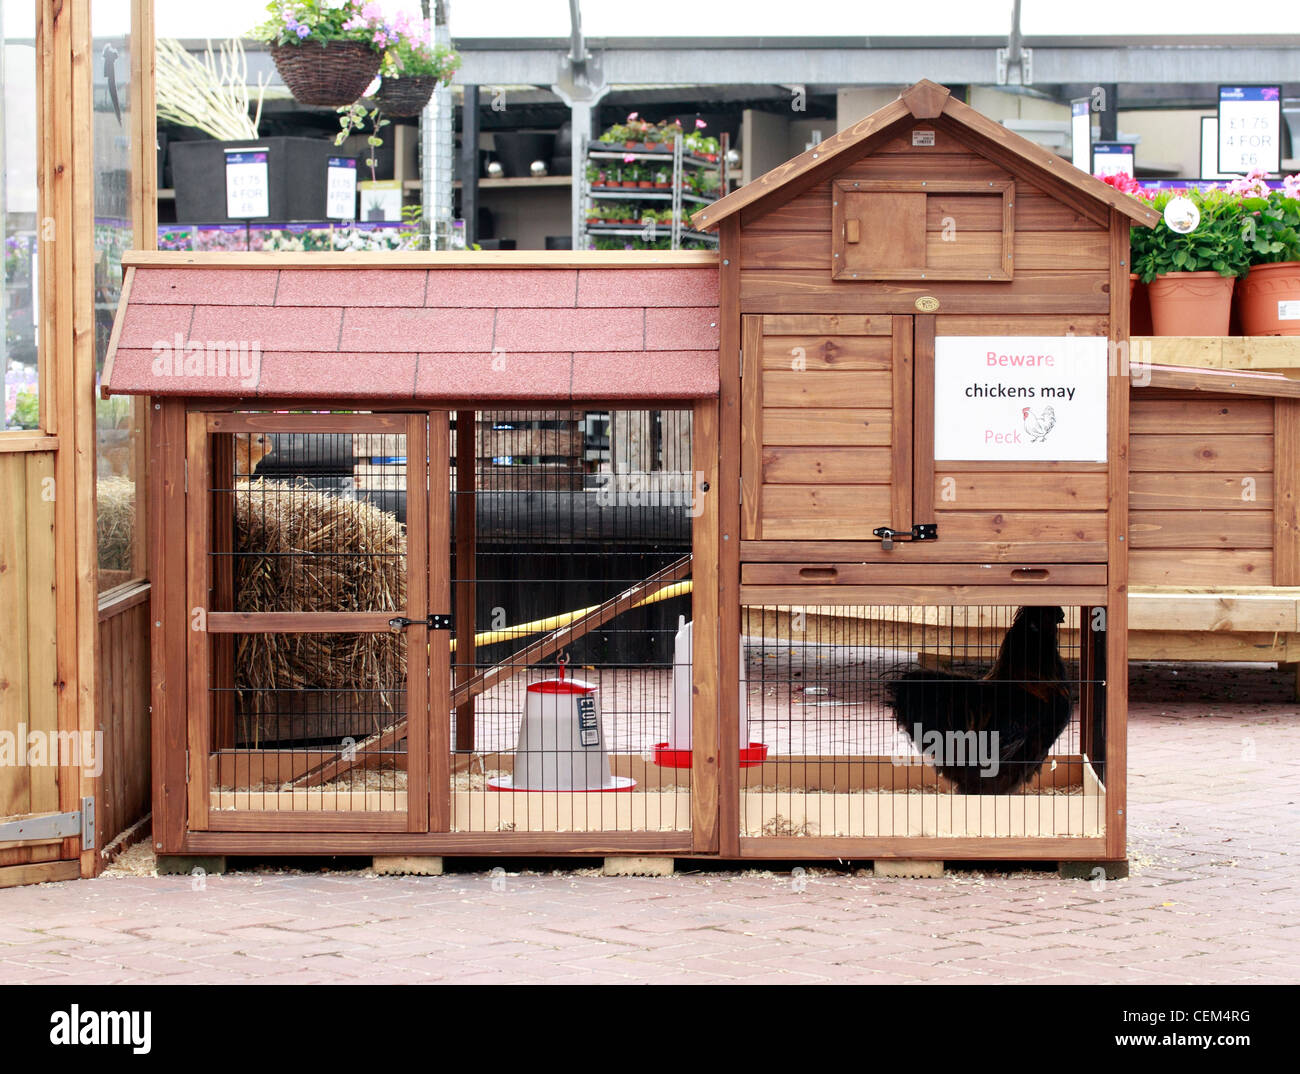 Uk Domestic Poultry Being Kept In A Chicken Coup Gallus